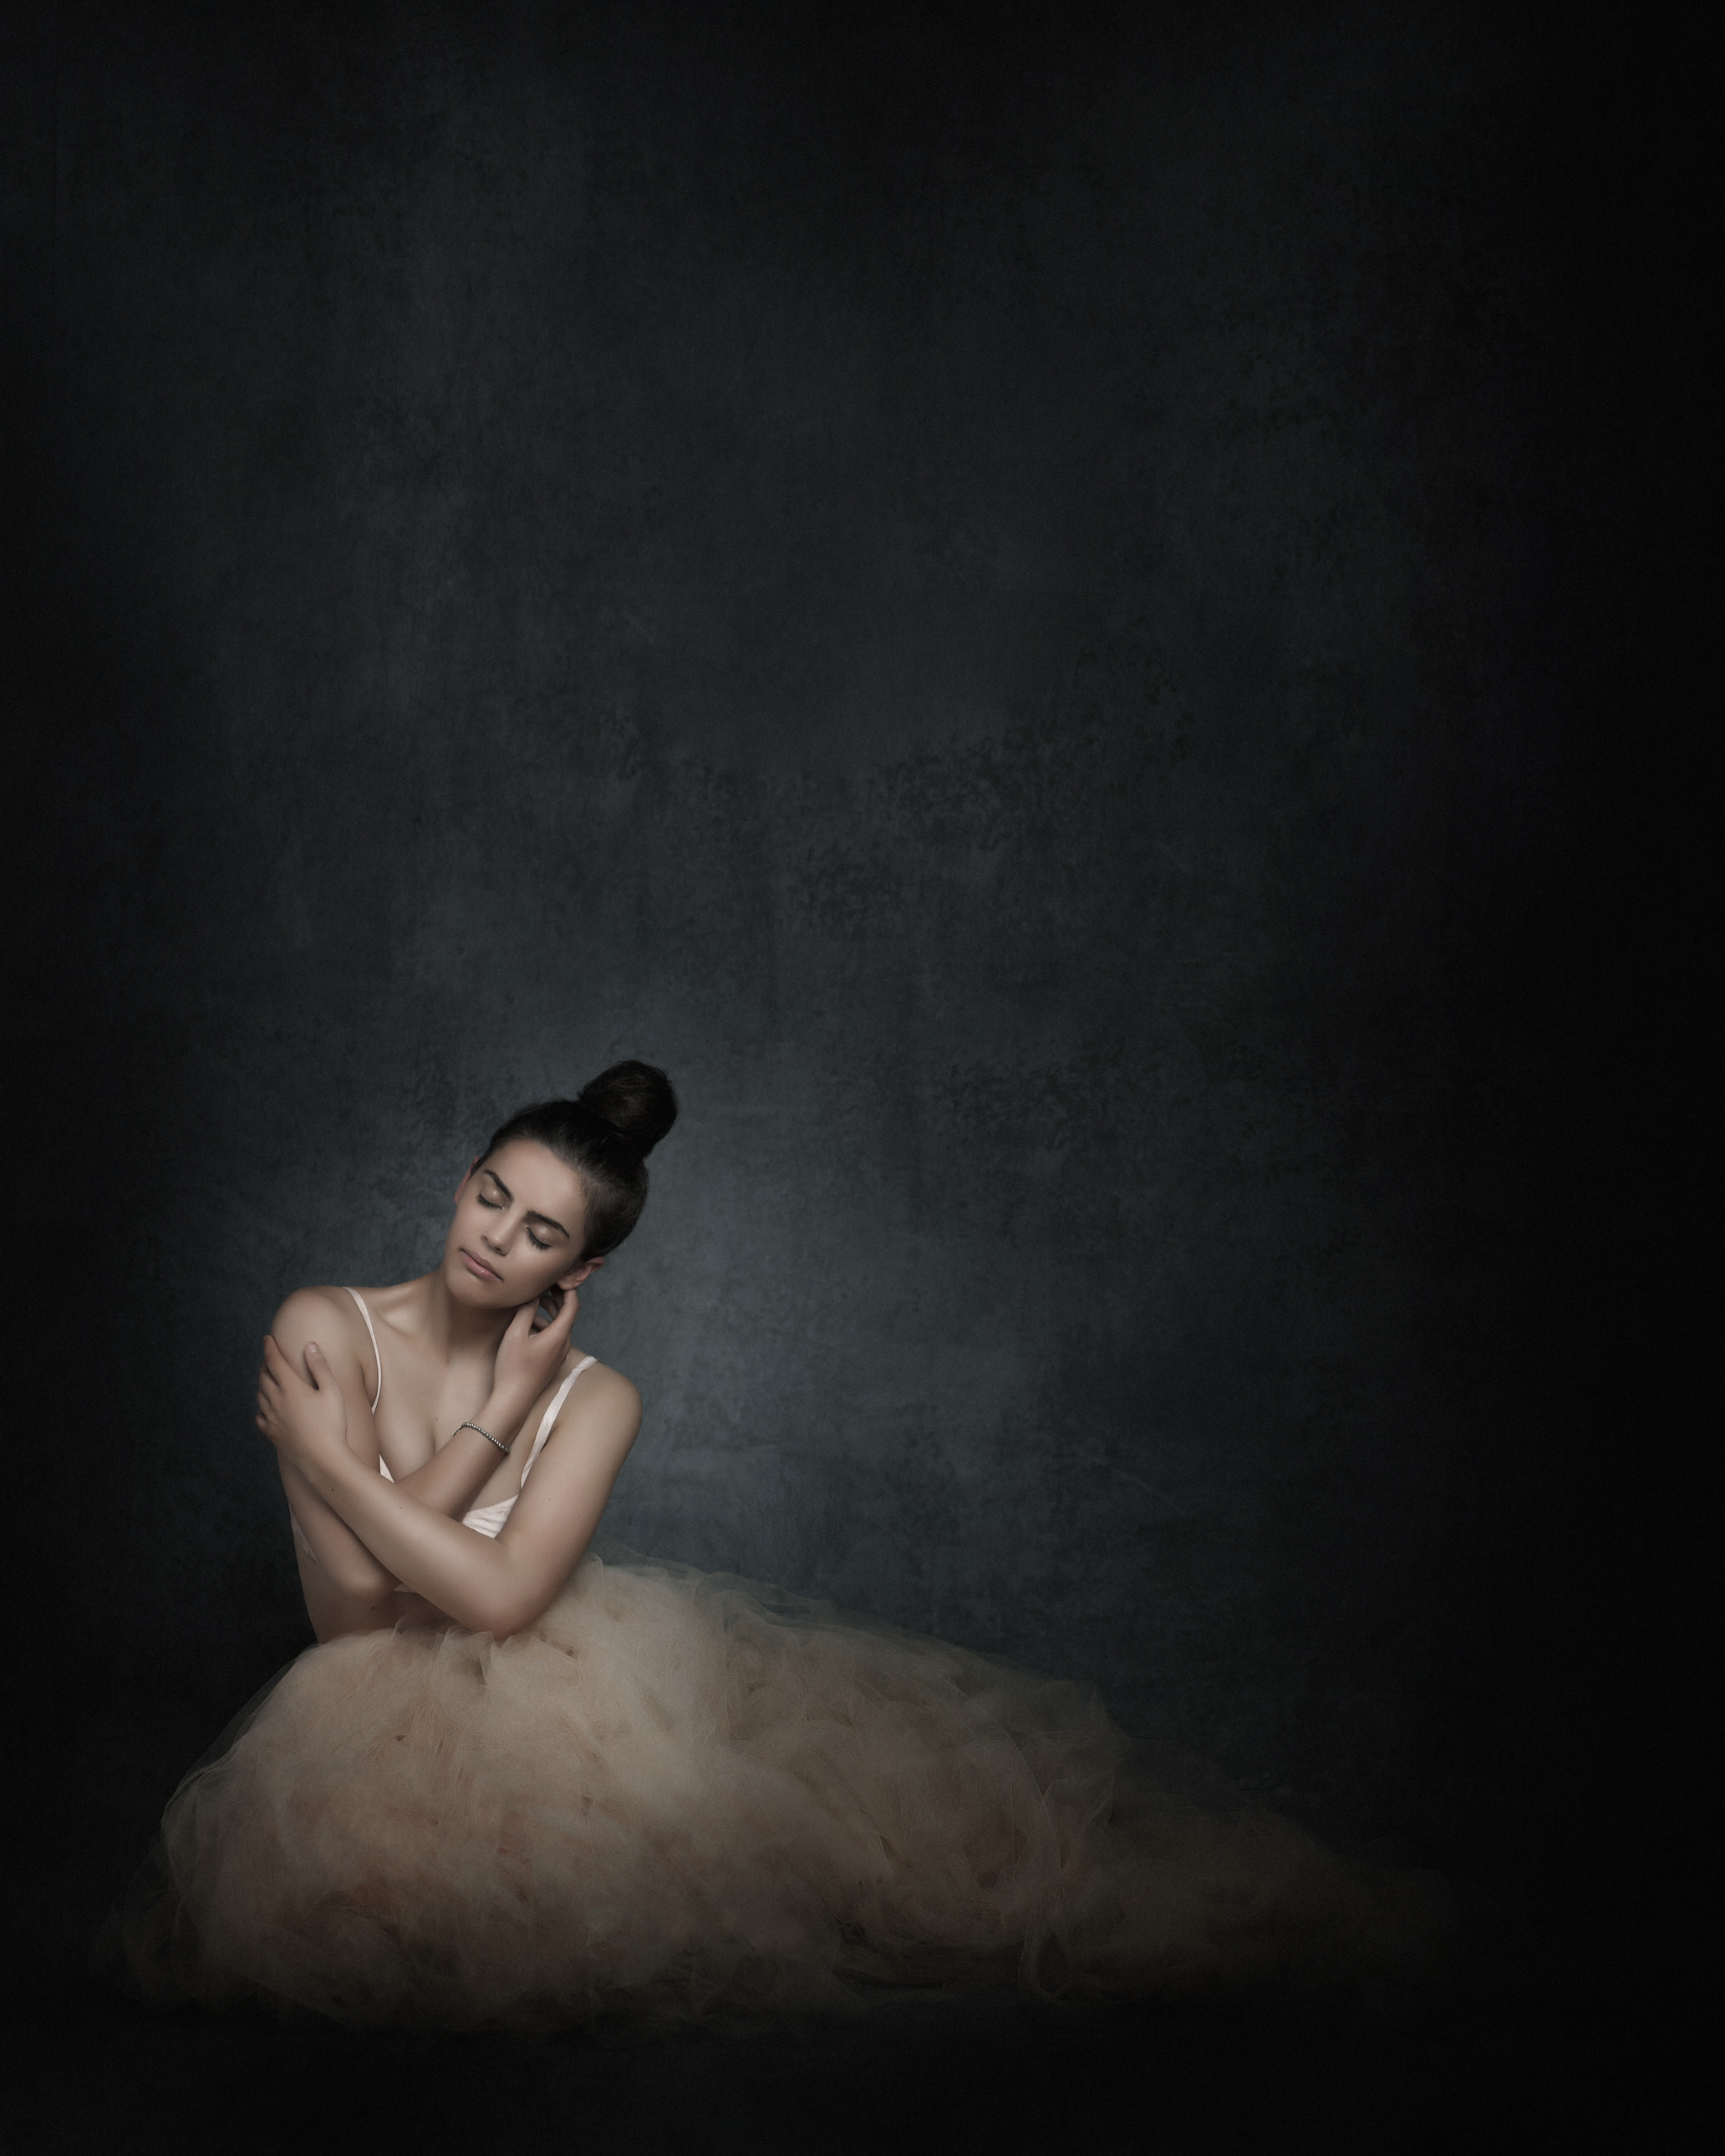 dancer portrait fine art in style by Portrait photographer Preston